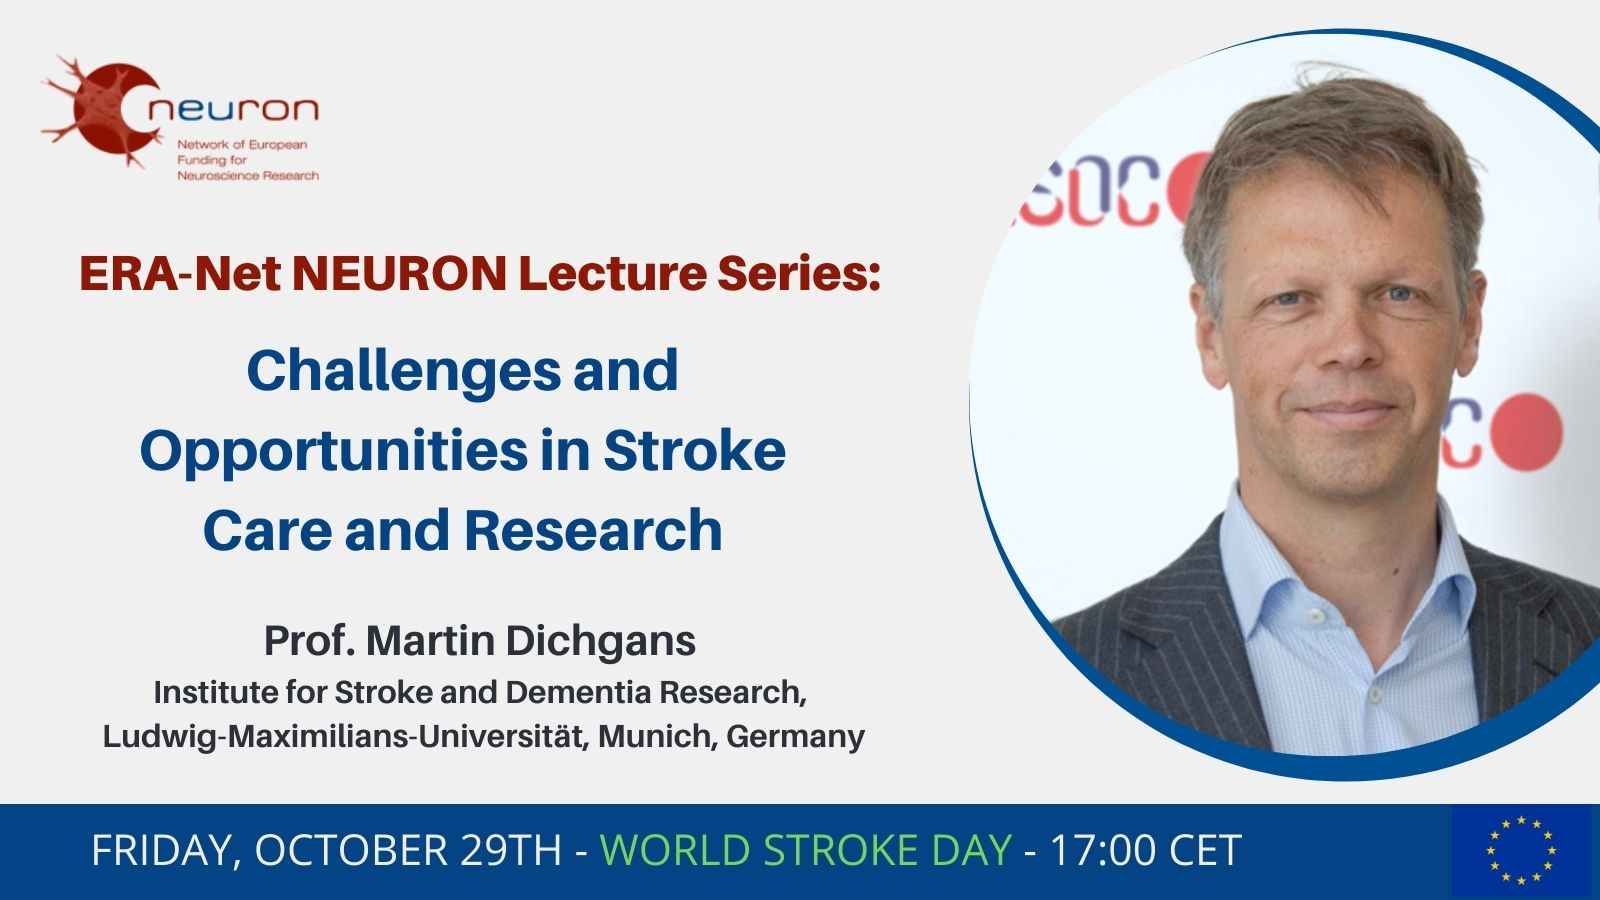 World Stroke Day: Join the lecture: Challenges and opportunities in stroke care and research, 17.00 CEST